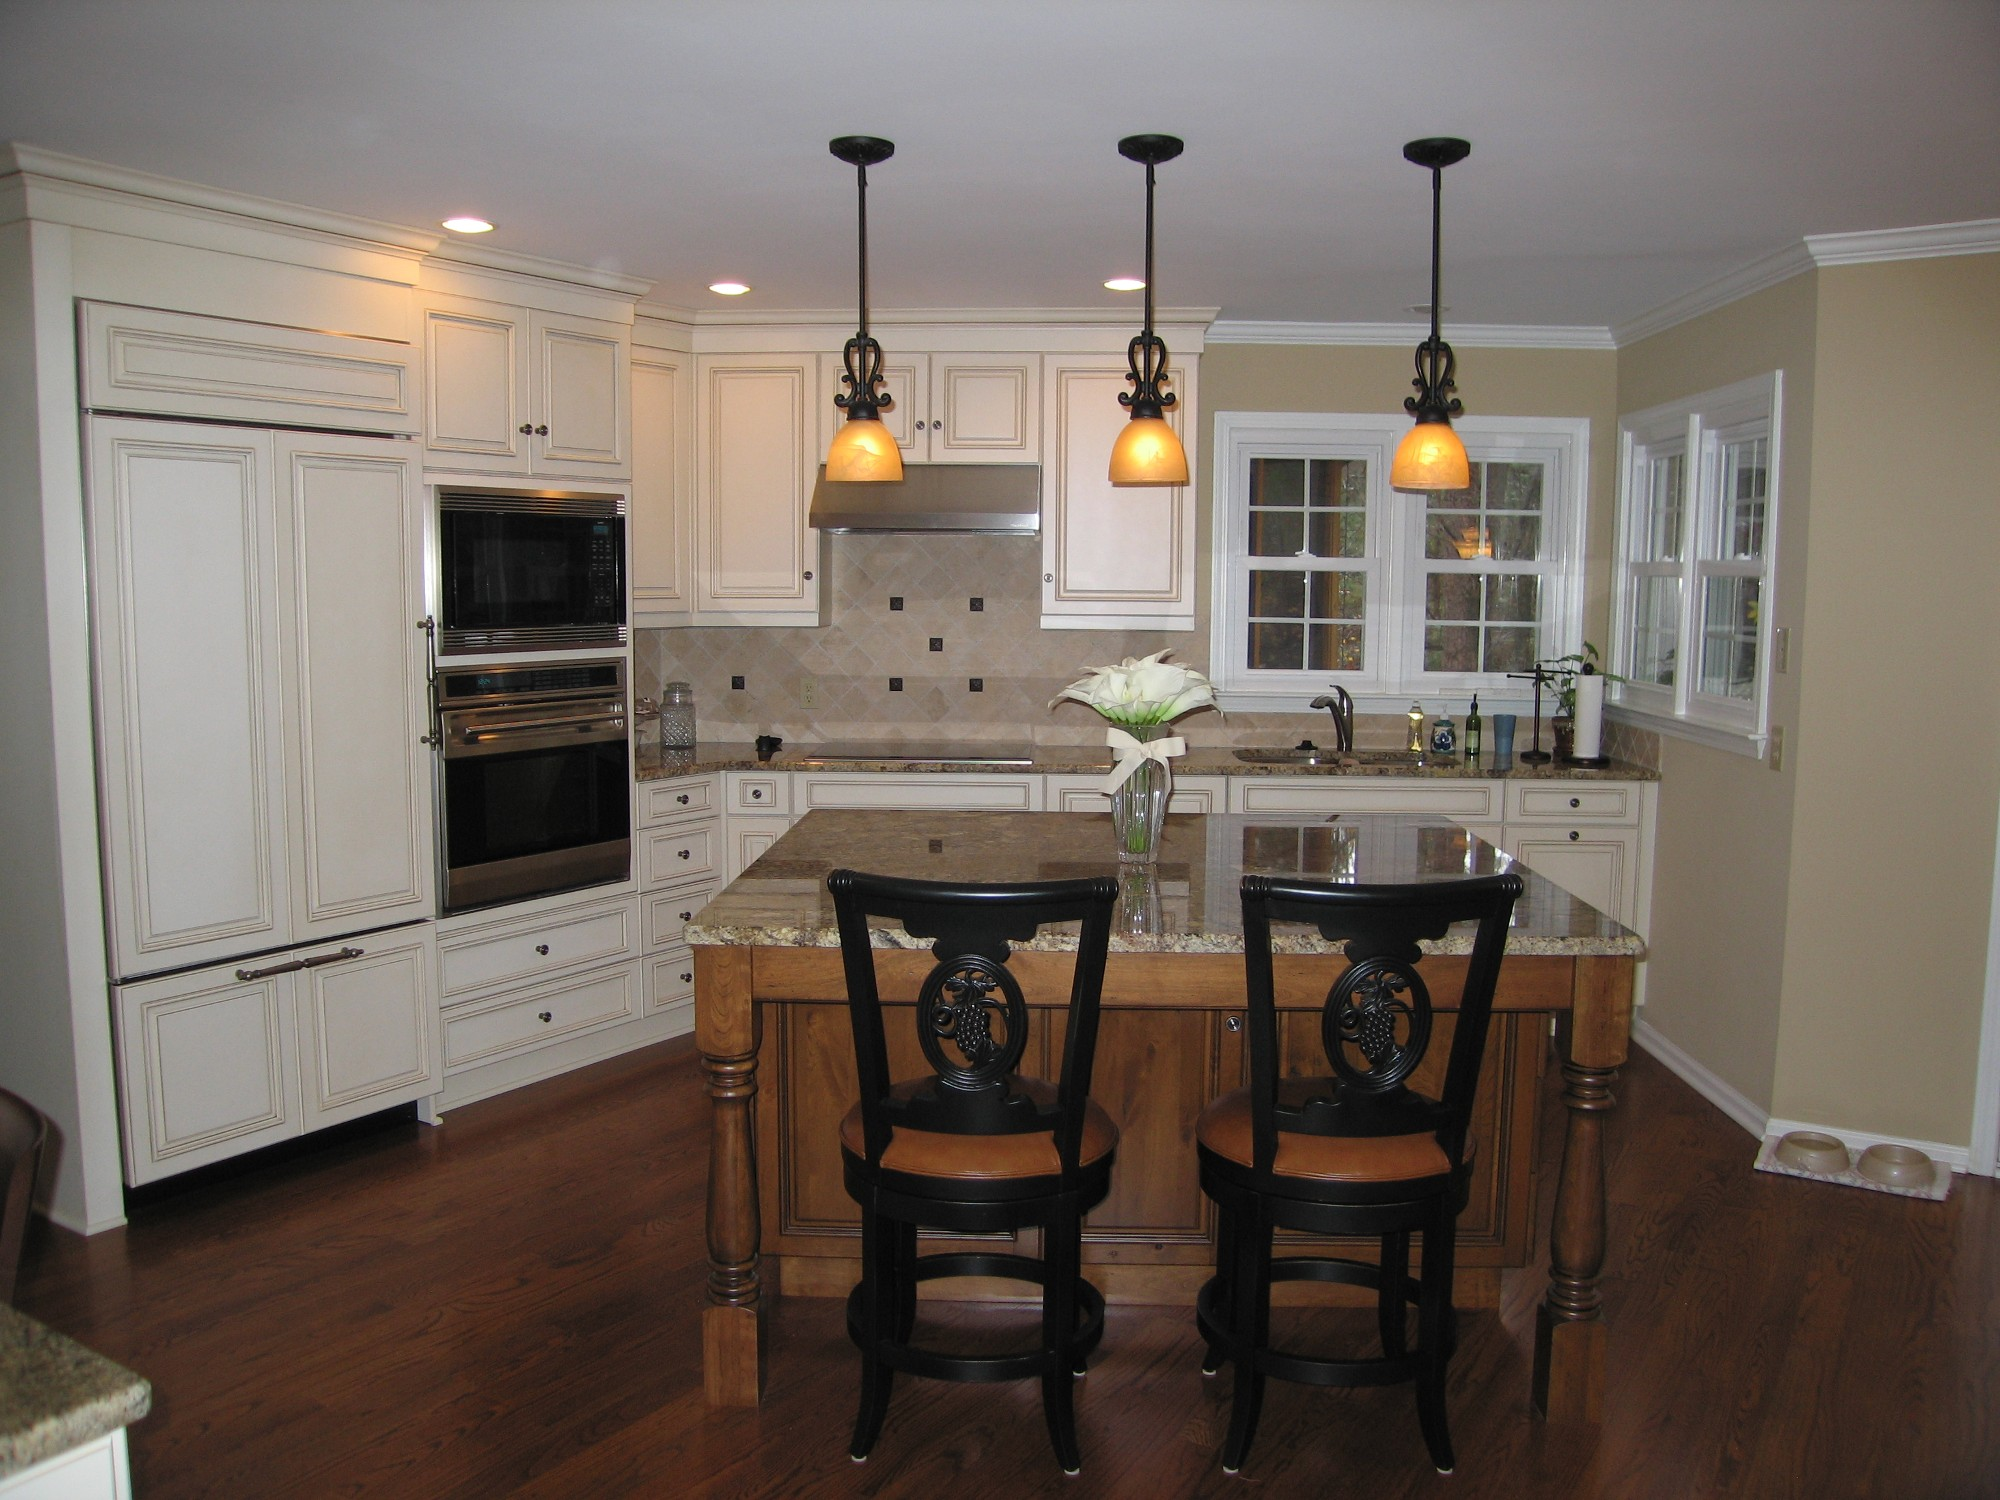 Whether you need help with bathroom or kitchen design in Norcross, GA, contact us